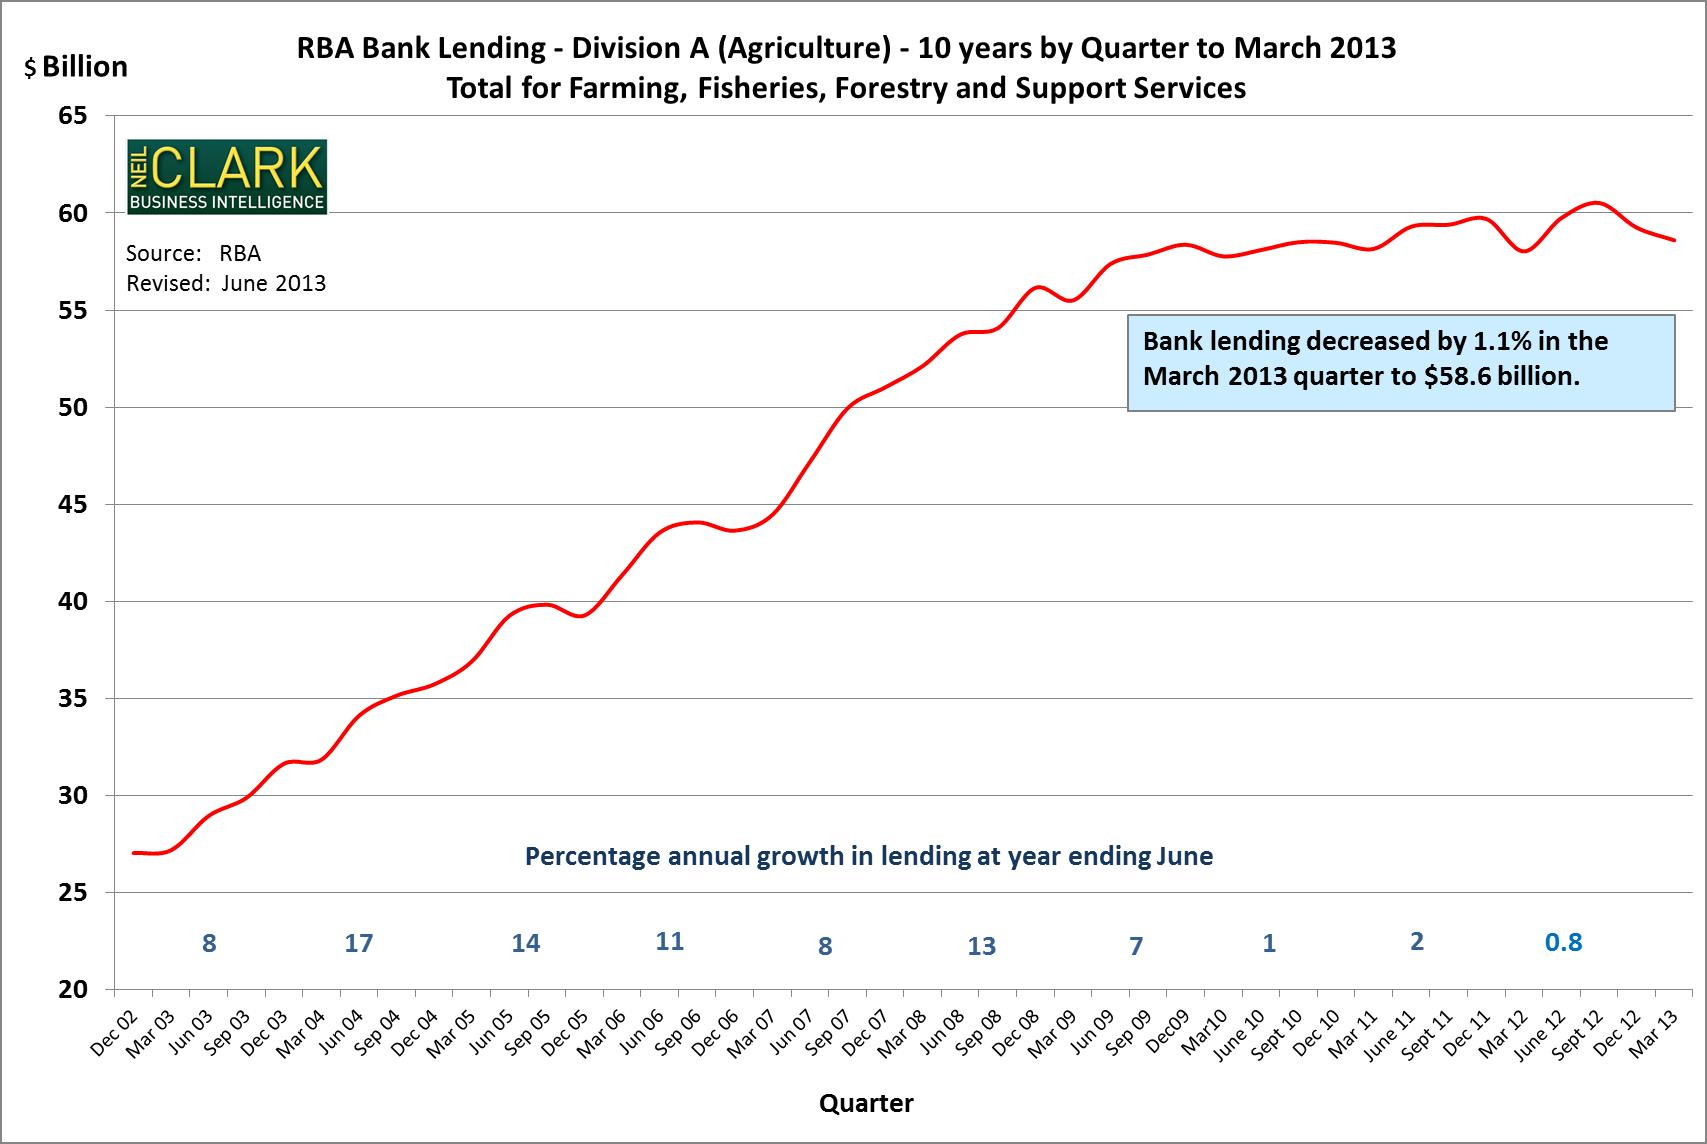 Figure 5. RBA Lending – 10 years by quarter to March 2013